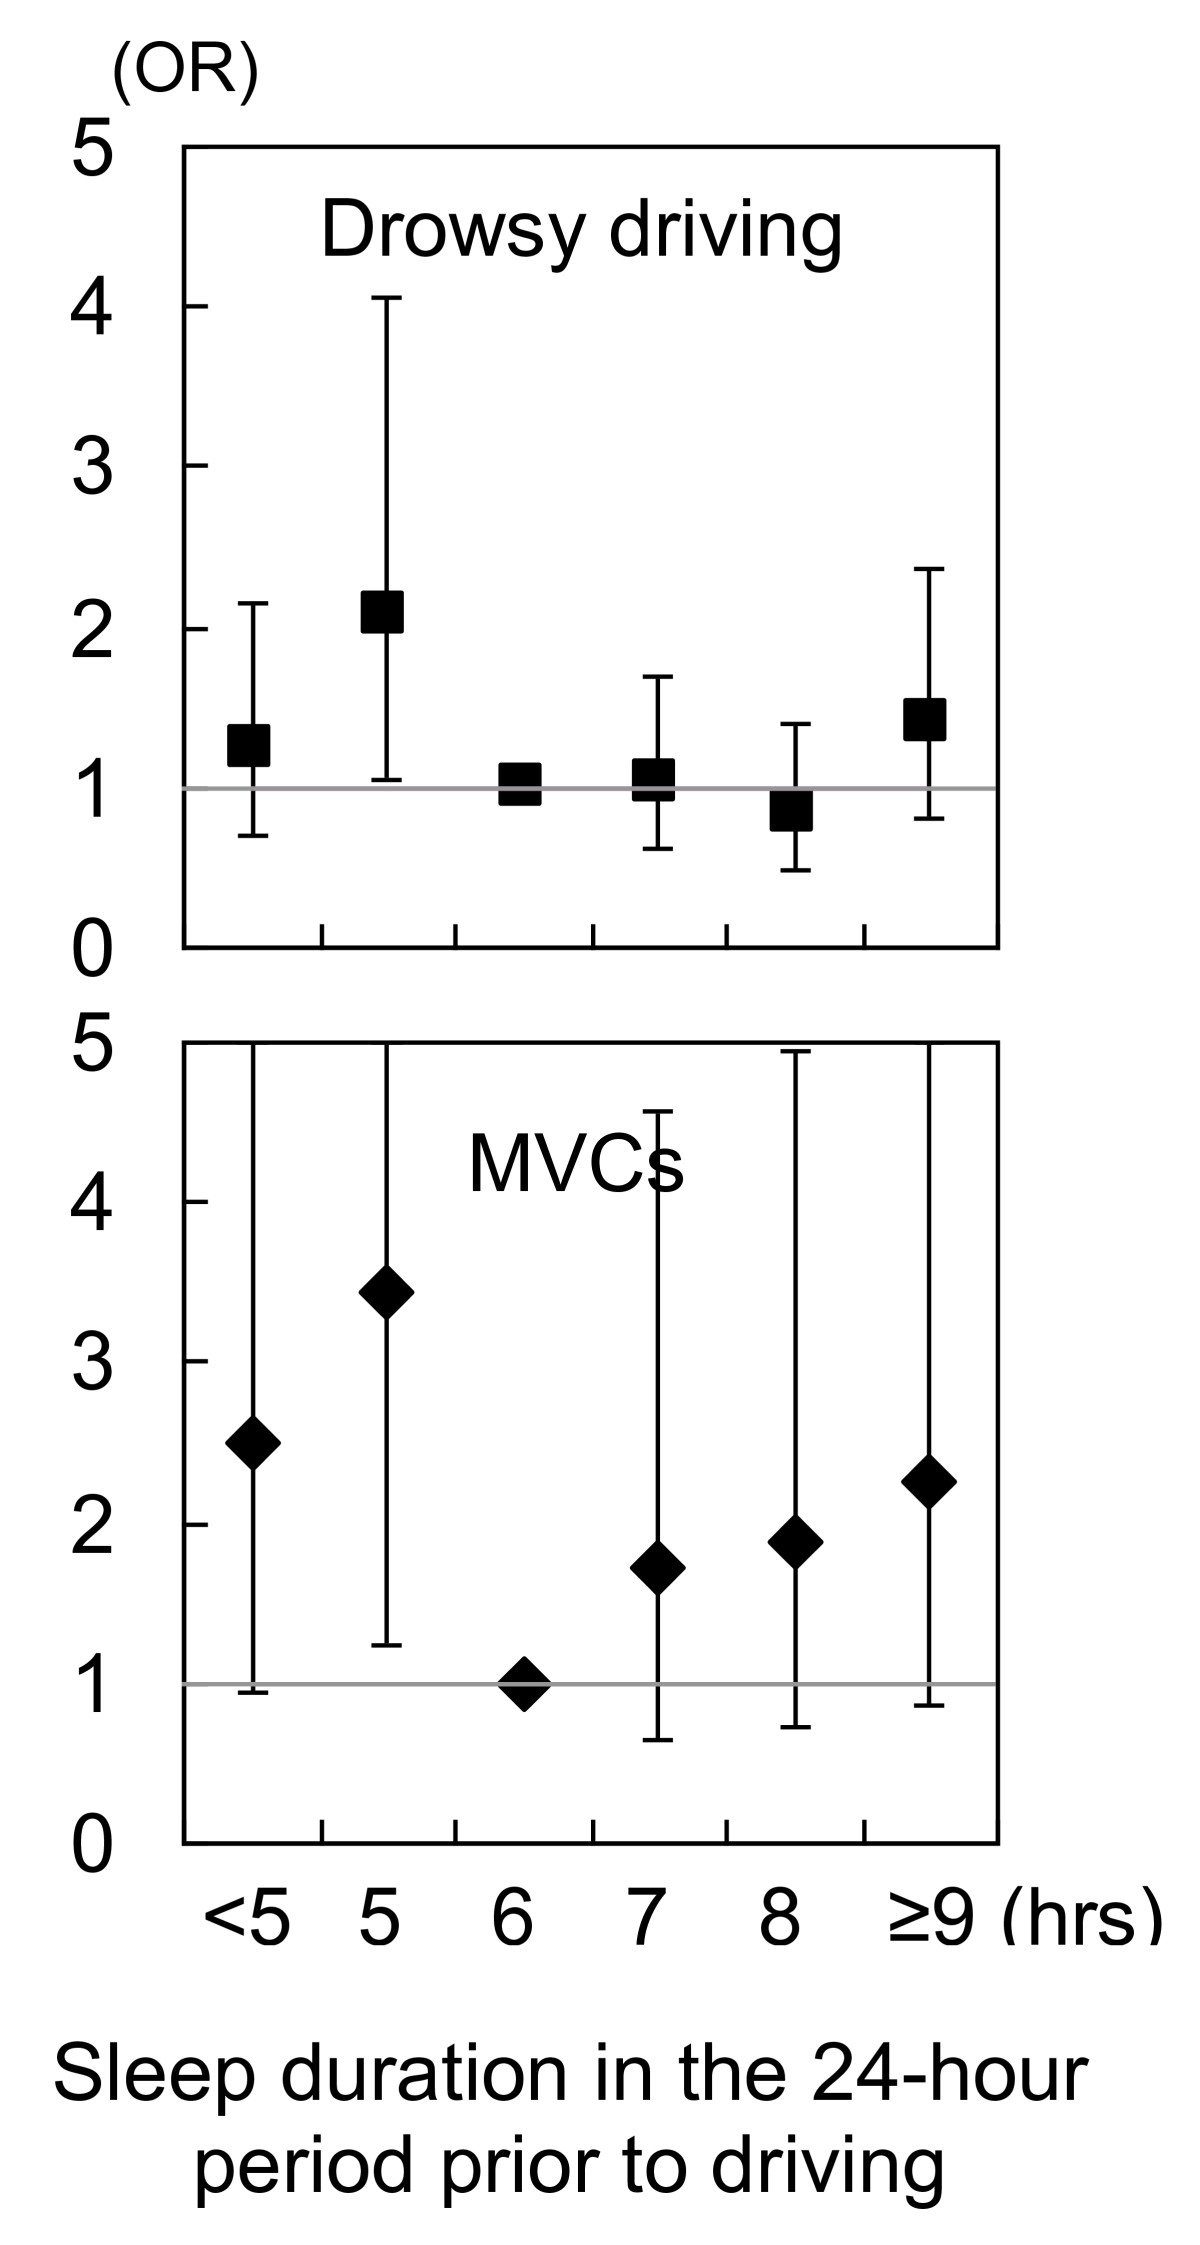 http://static-content.springer.com/image/art%3A10.1186%2F1880-6805-31-6/MediaObjects/40101_2012_Article_3_Fig1_HTML.jpg